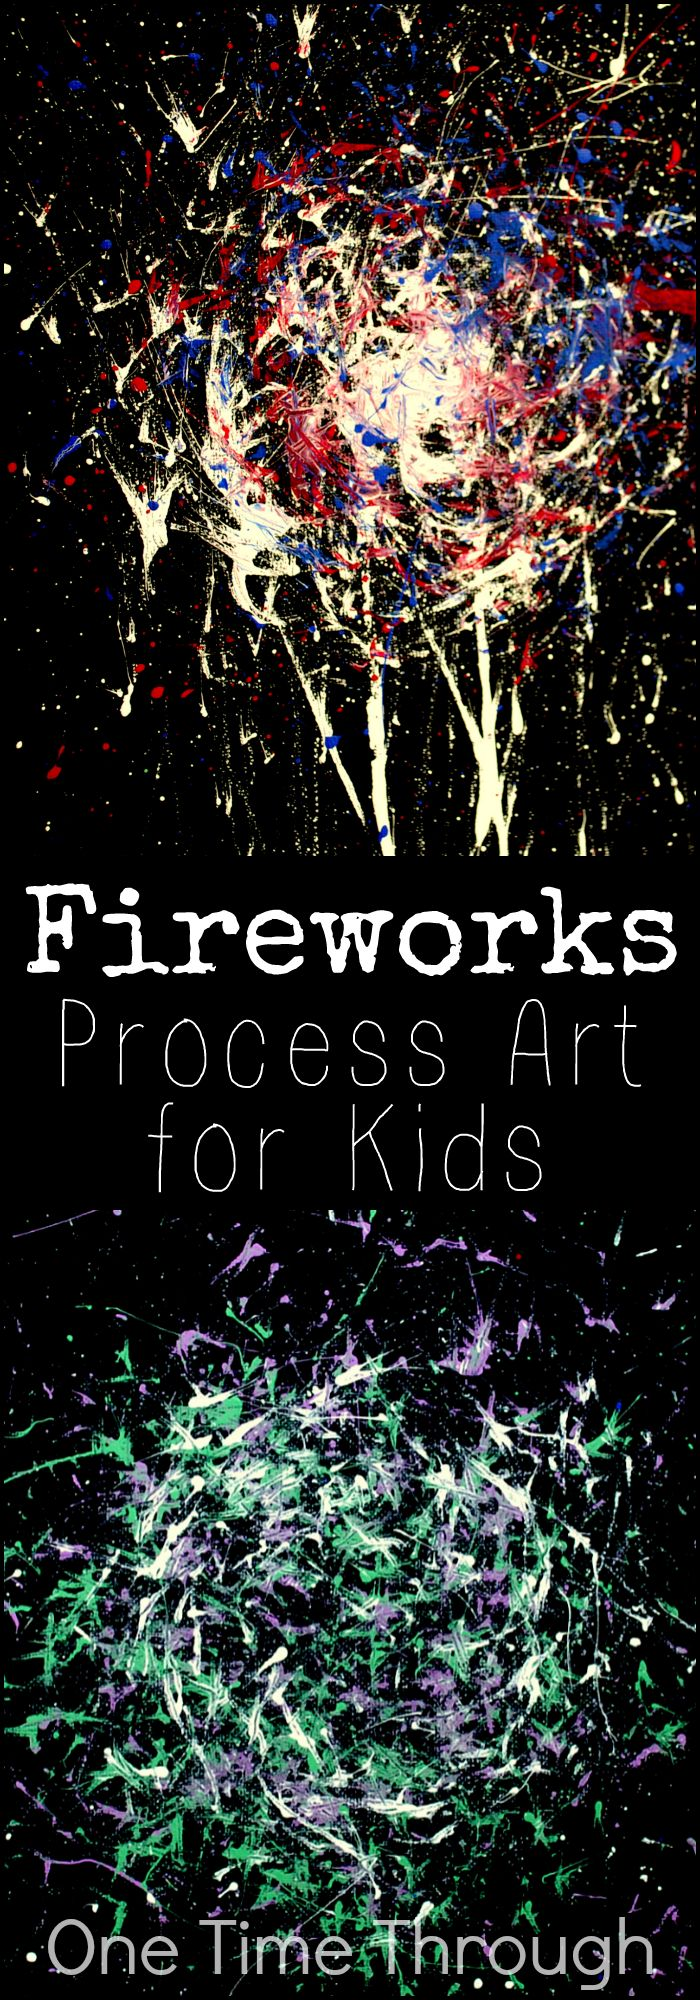 A fun open-ended art project inspired by fireworks for kids of all ages. Perfect for Canada Day, the Queen's Birthday, Memorial Day, July 4th, or Victoria Day! {One Time Through}